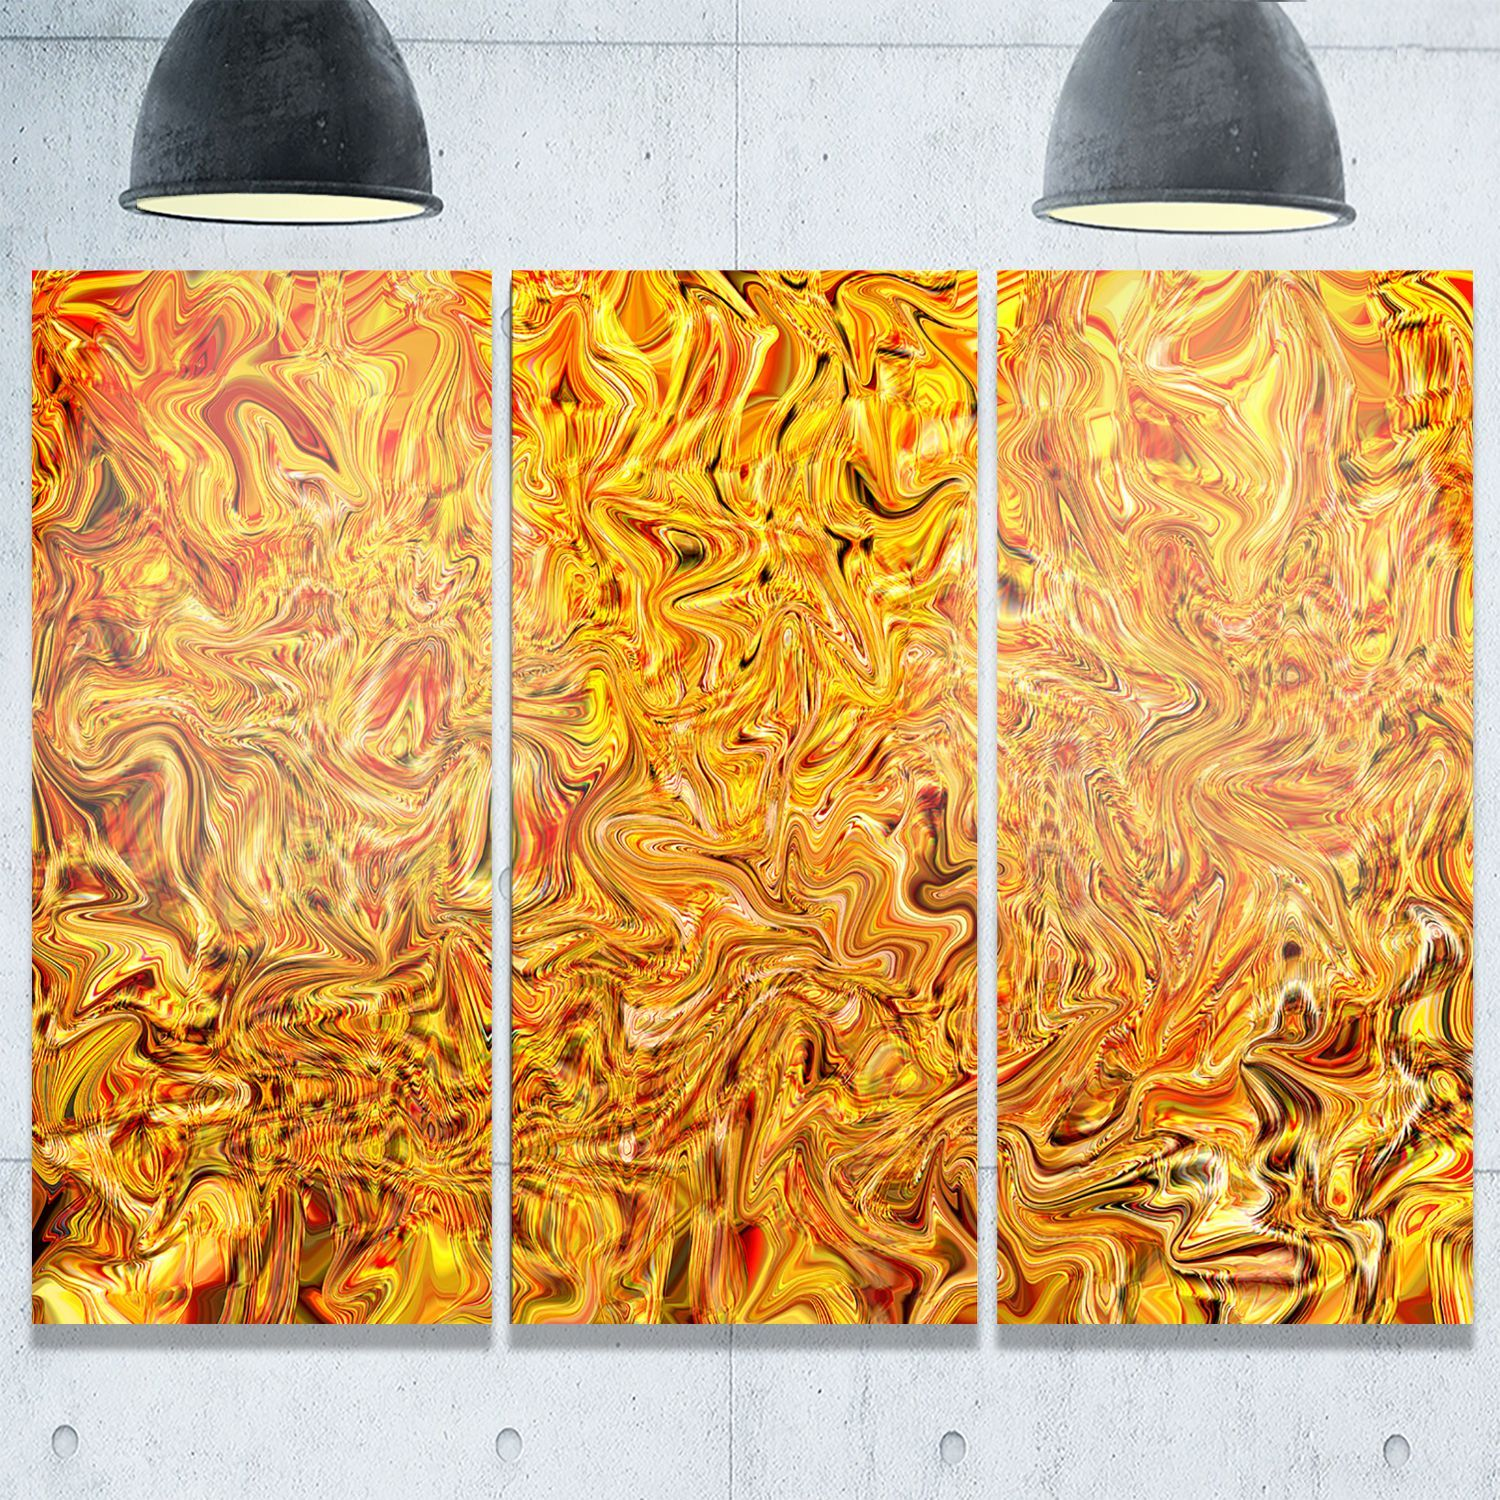 Textured Flowing Yellow Abstract Art Glossy Metal Wall Art By Design Art